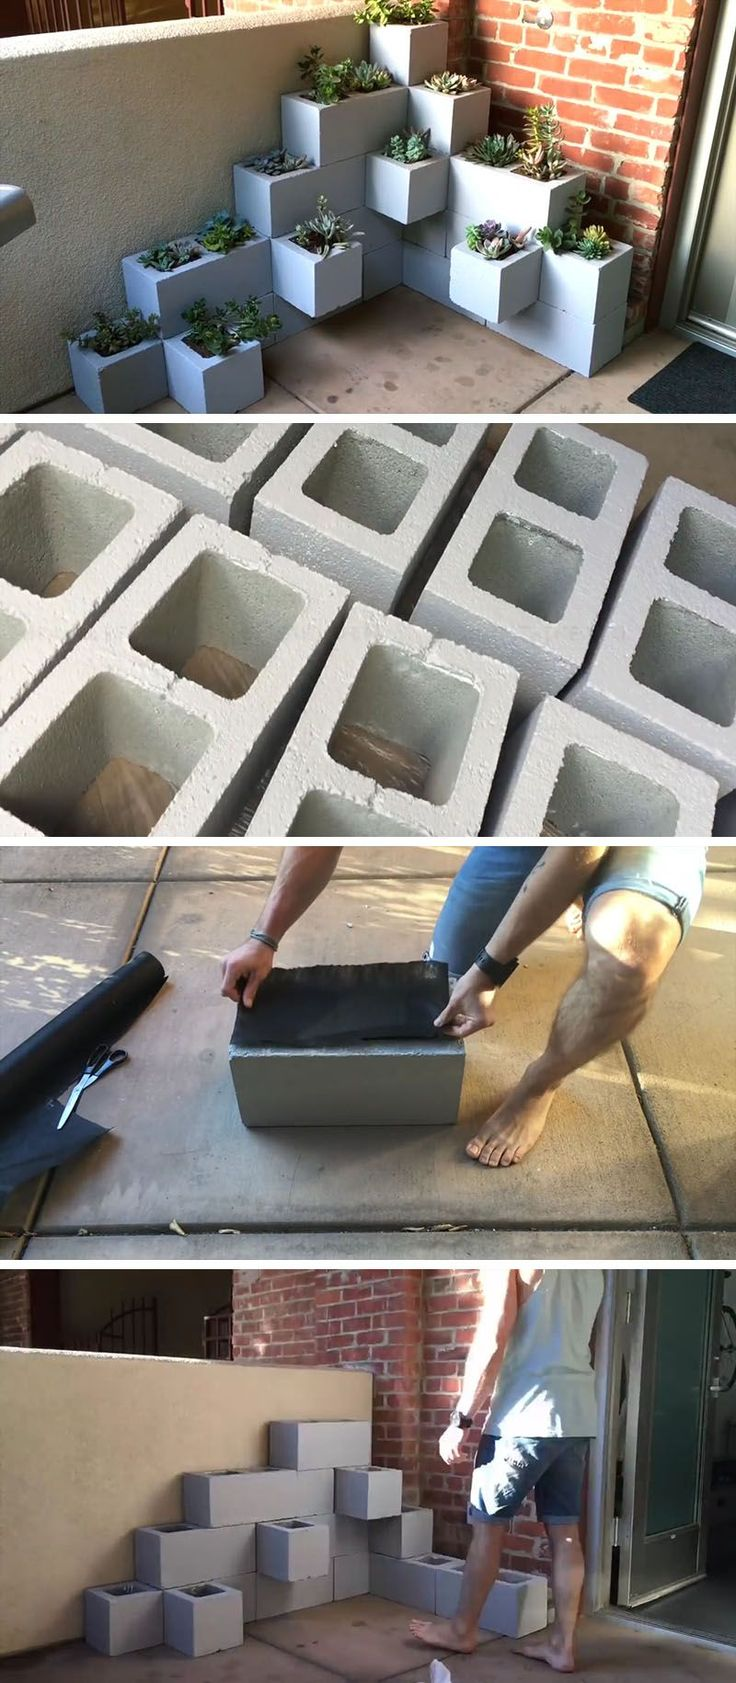 Diy patio furniture cinder blocks - Make This Inexpensive And Modern Outdoor Diy Succulent Planter Using Cinder Blocks